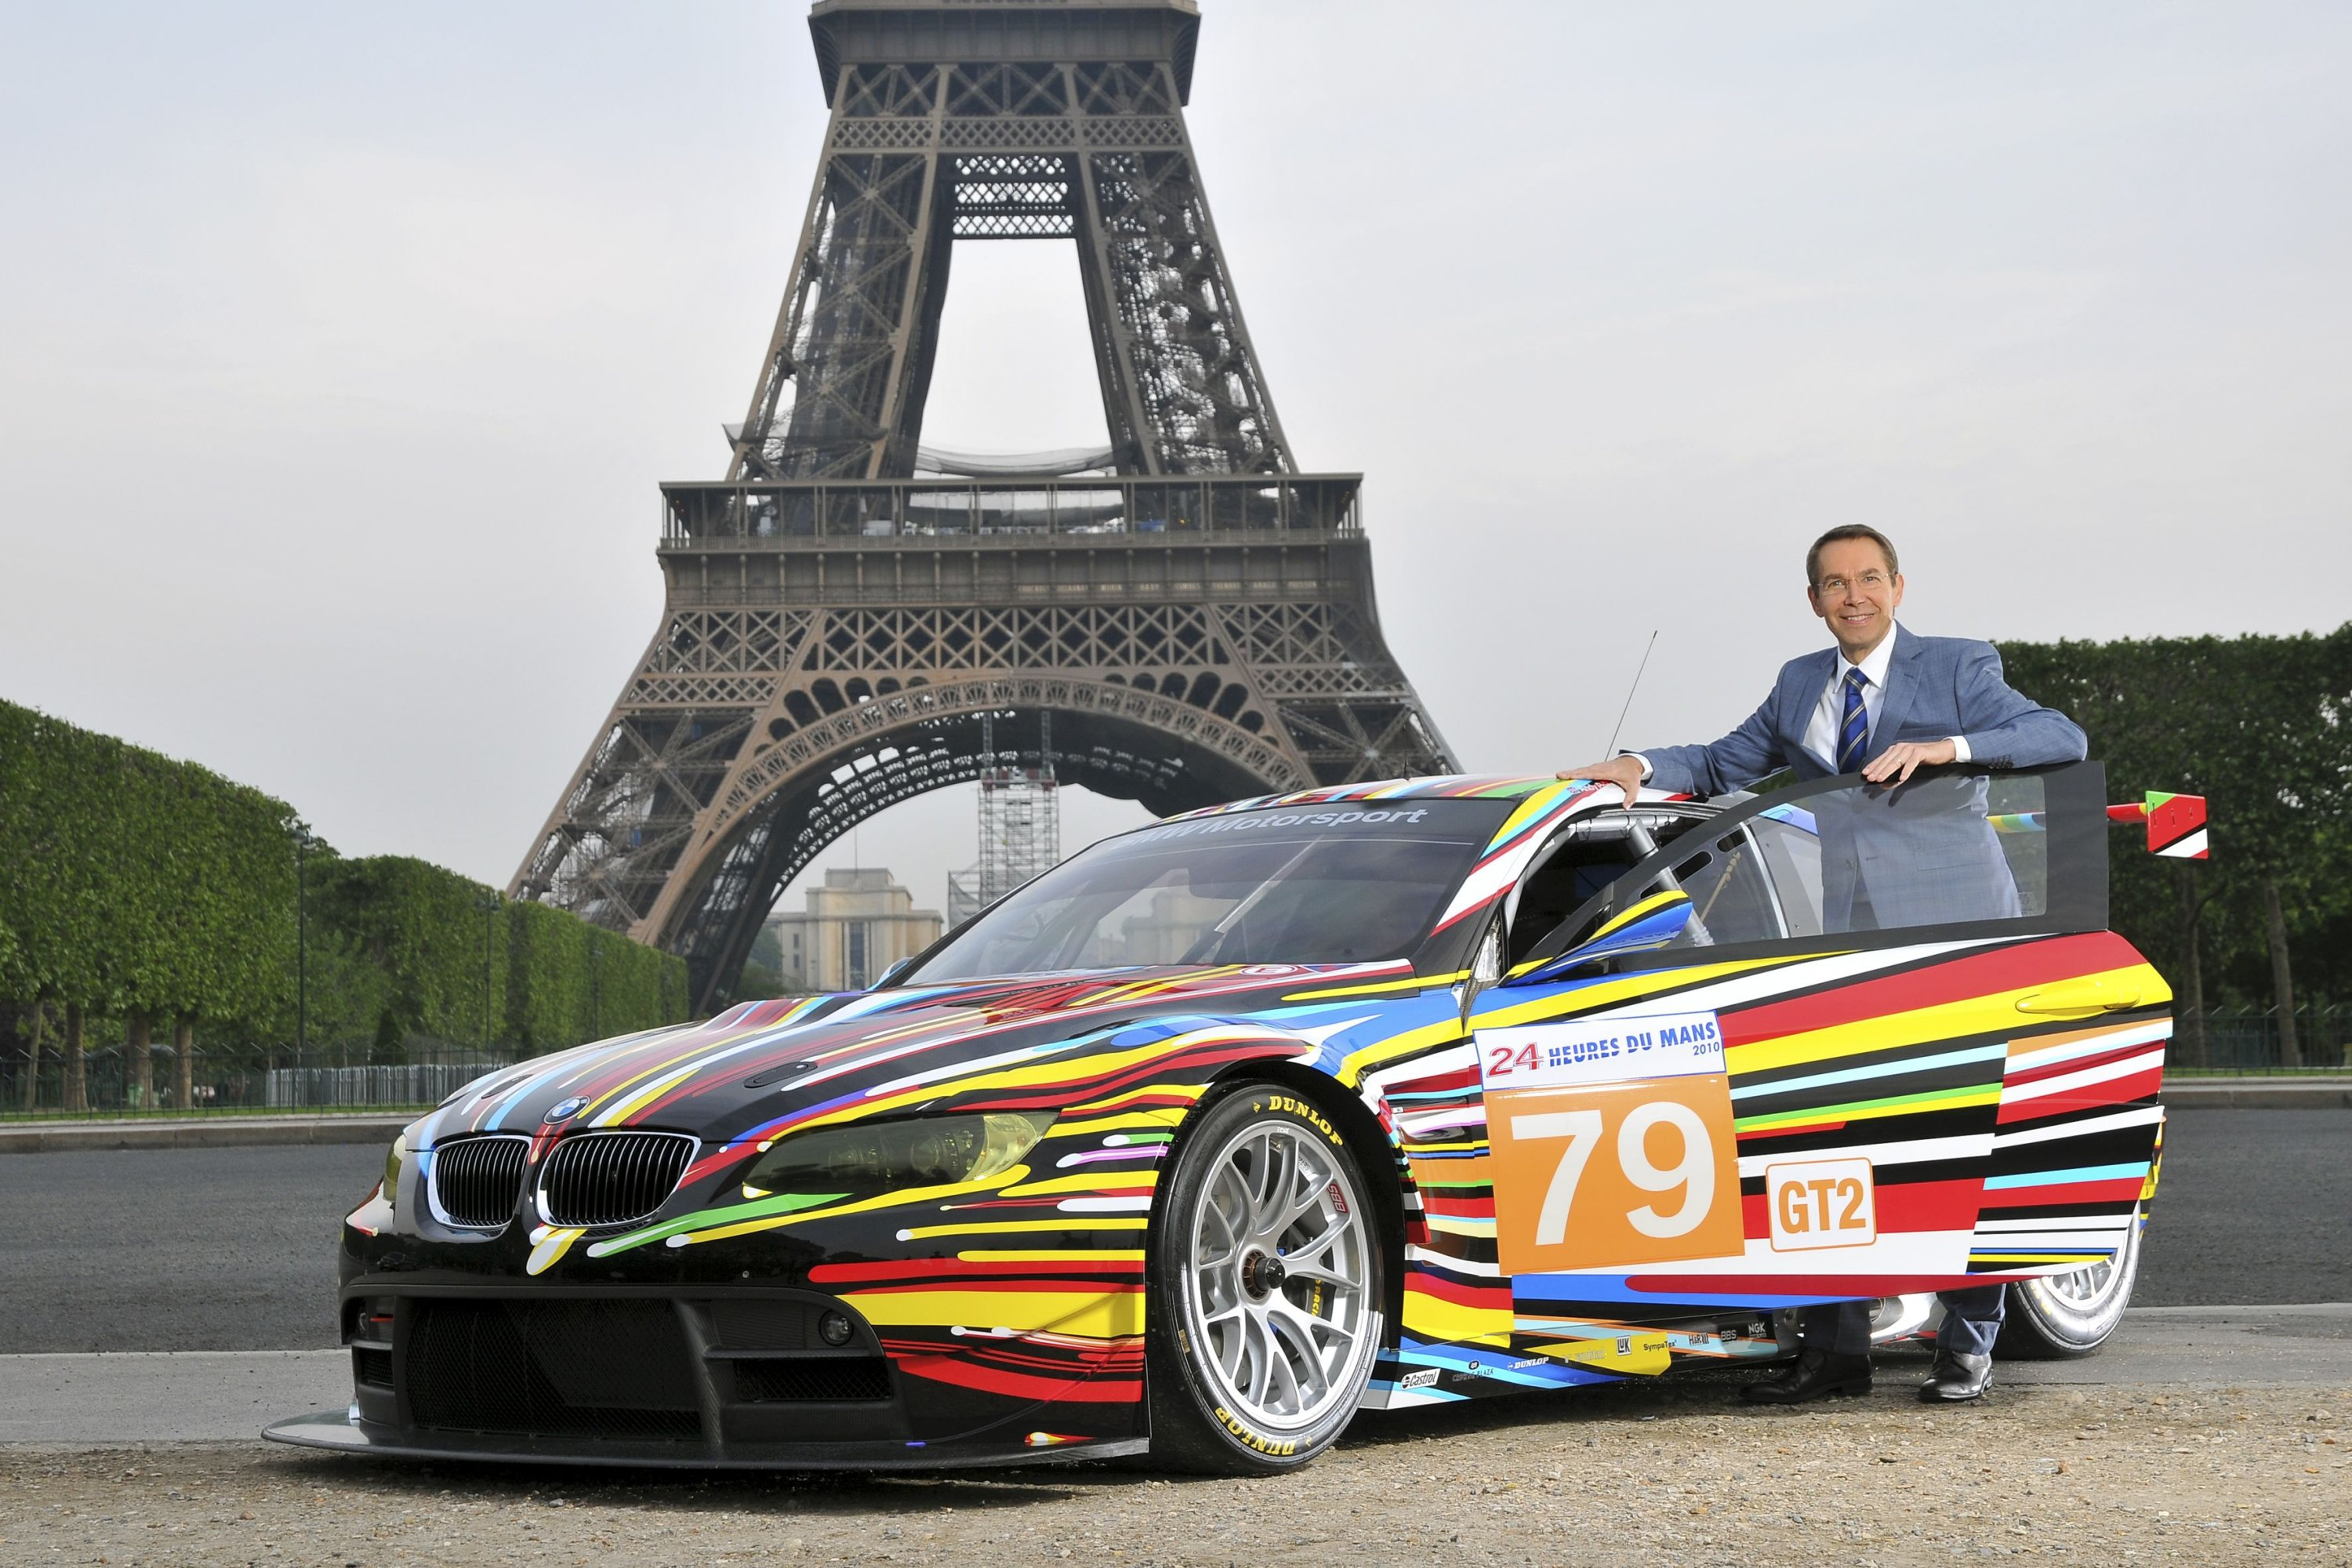 Drive through a rainbow? The design of this BMW M3GT2 comes from artist Jeff Koons. (DPA Photo)